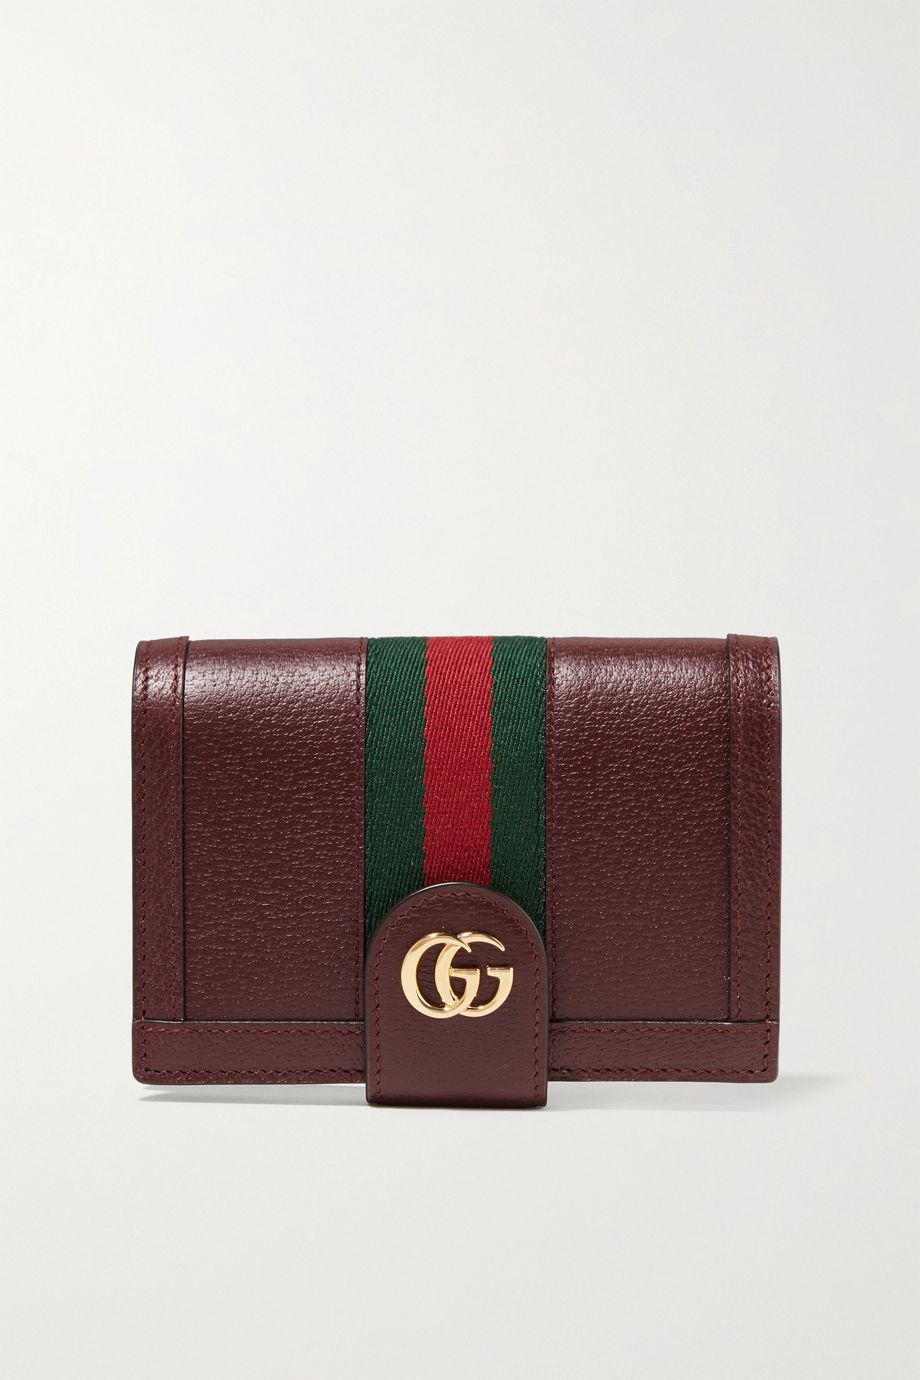 Gucci Textured-leather passport cover